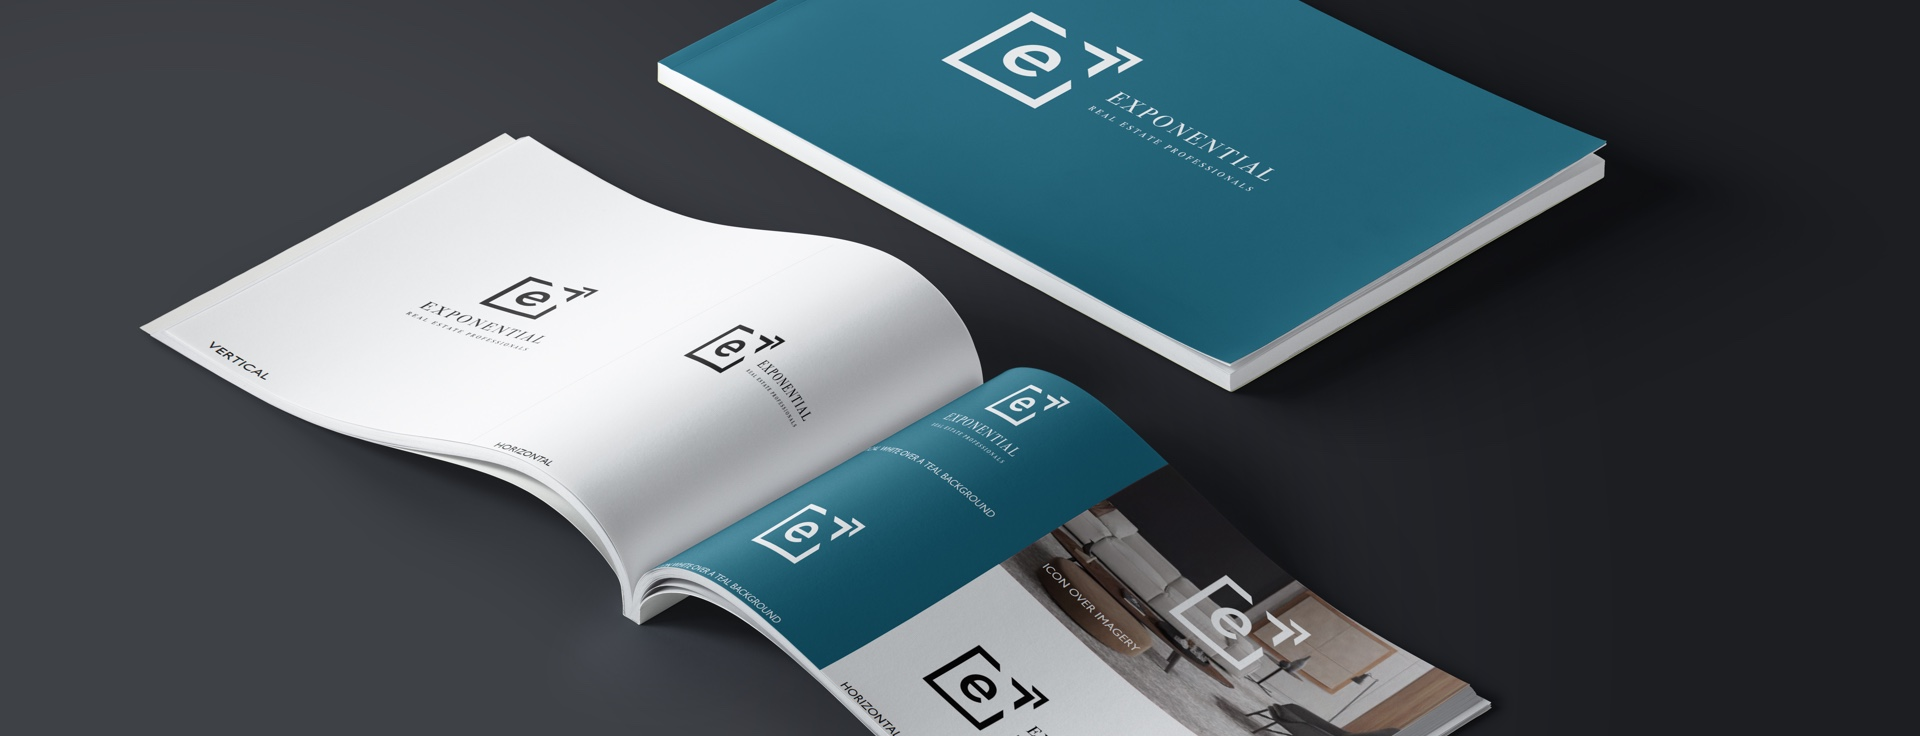 Vancouver Exponential Real Estate Branding Guideline